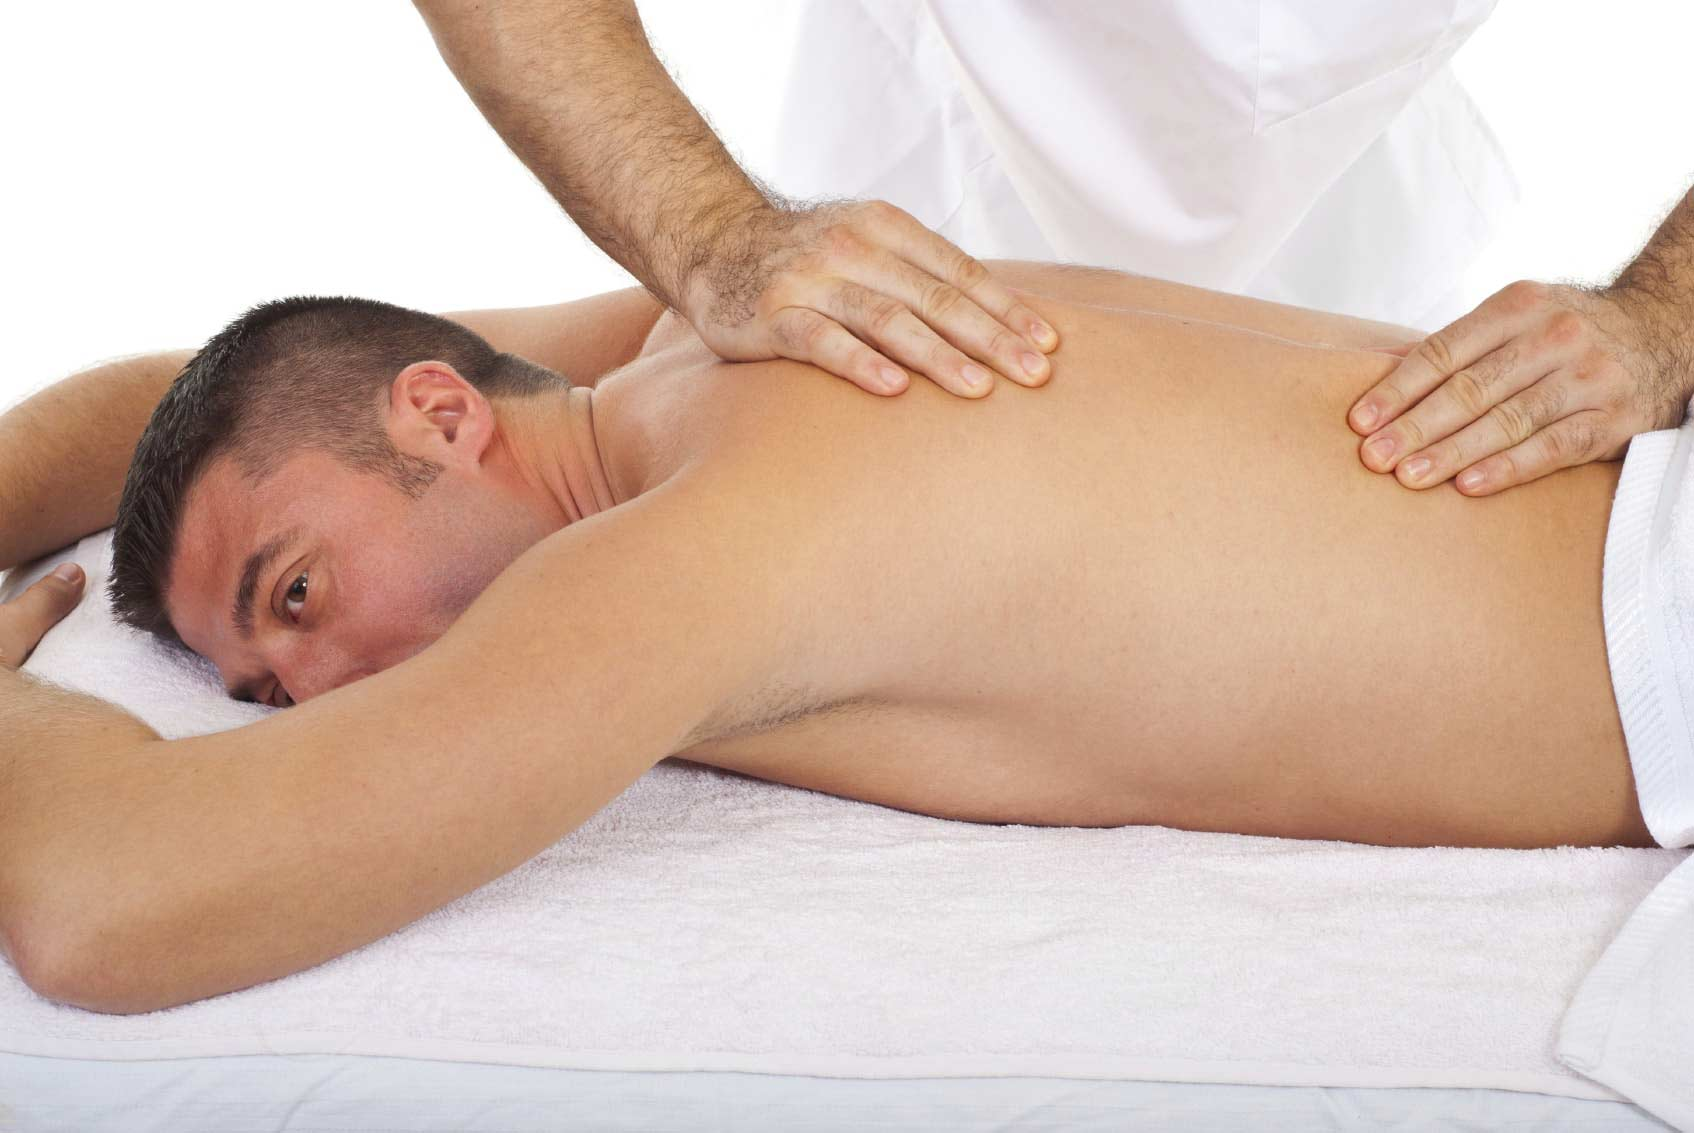 phillips male body to body massage service in Agra